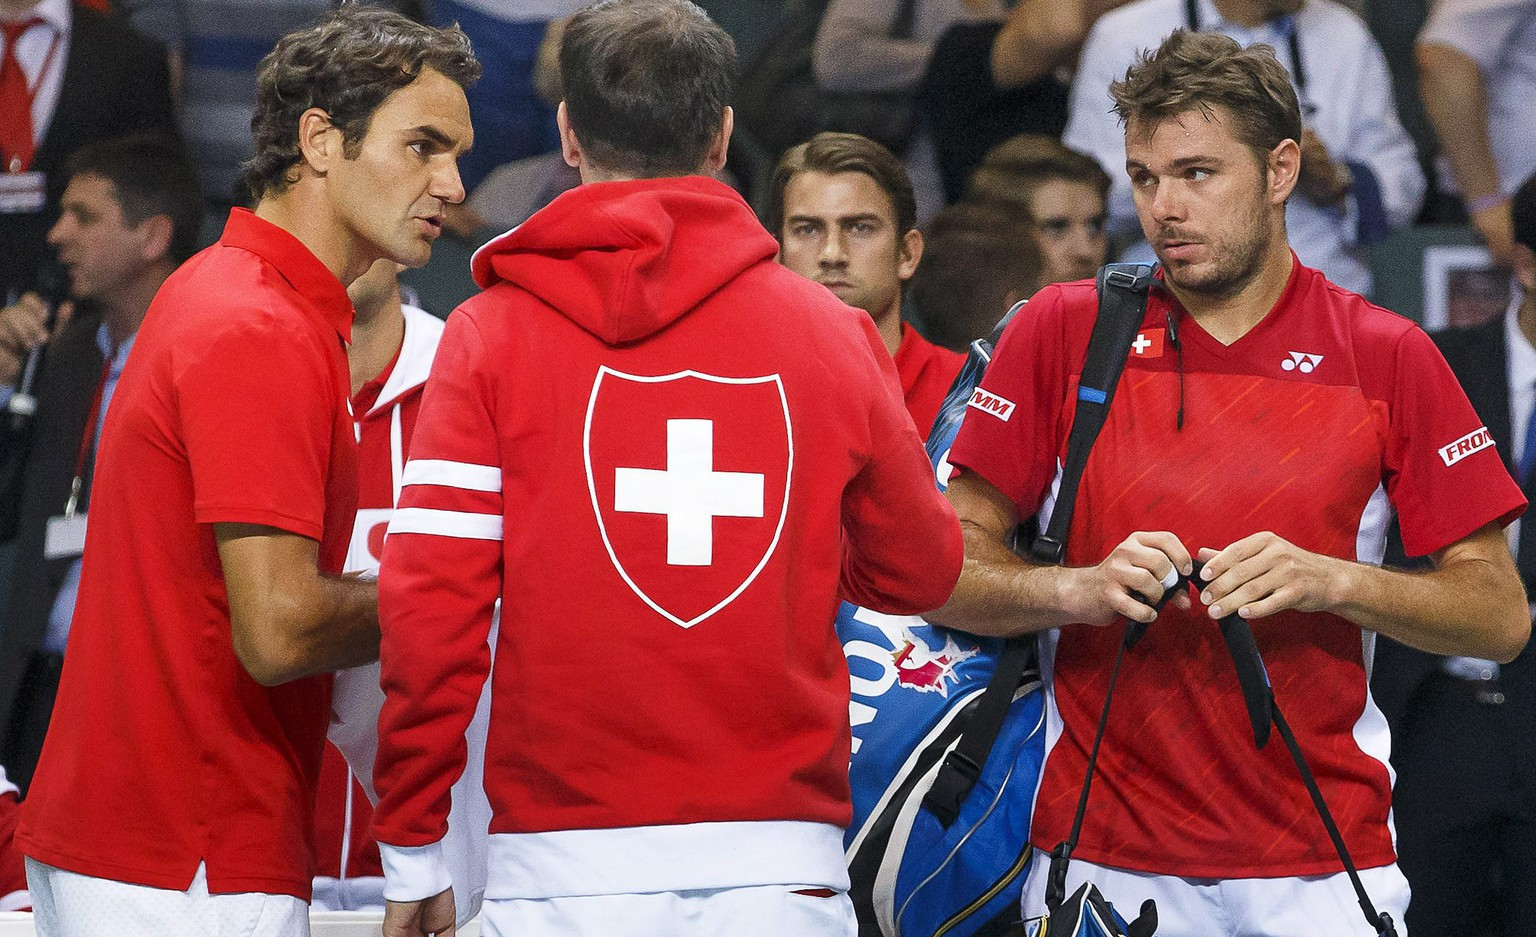 epa04155538 Swiss Davis Cup Team captain Severin Luethi (C) and Roger Federer (L) and Stanislas Wawrinka (R) react after losing their doubles match to Kazakhstan's Andrey Golubev and Aleksandr Nedovyesov at the Davis Cup World Group quarter final tie between Switzerland and Kazakhstan at Palexpo in Geneva, Switzerland, 05 April 2014.  EPA/SALVATORE DI NOLFI